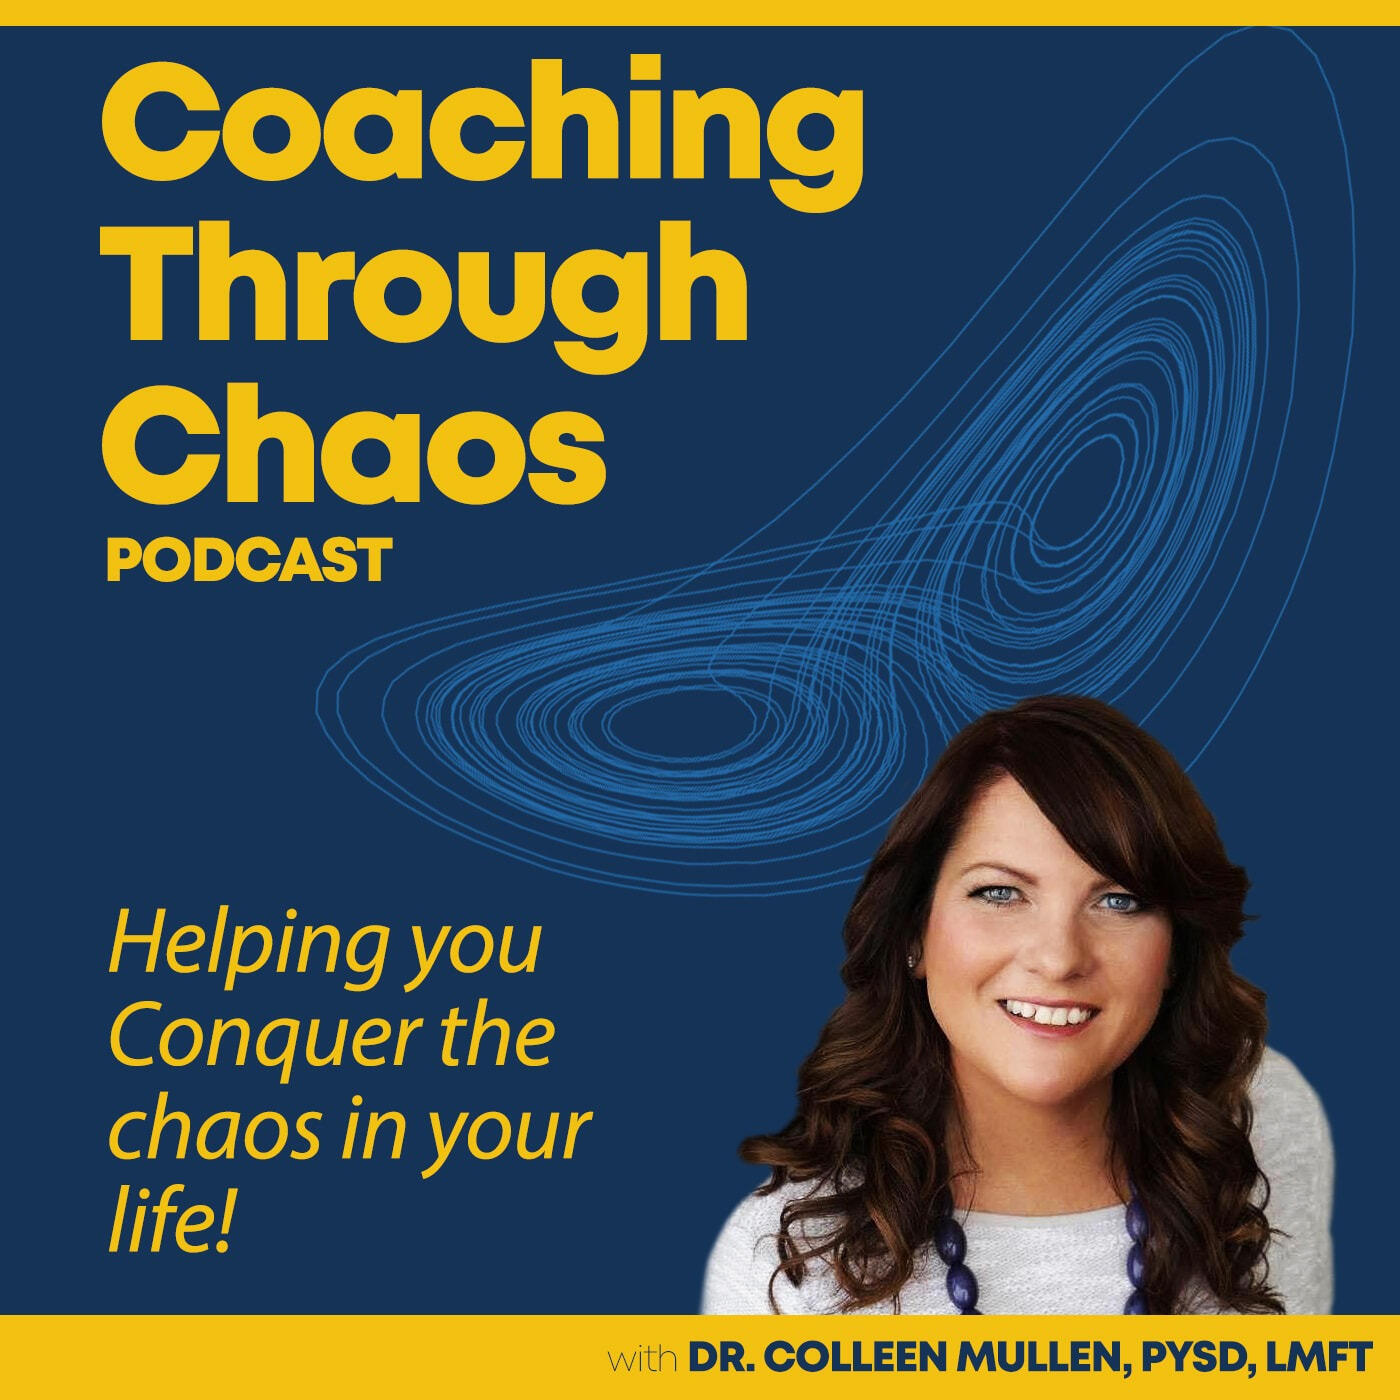 Coaching Through Chaos Podcast